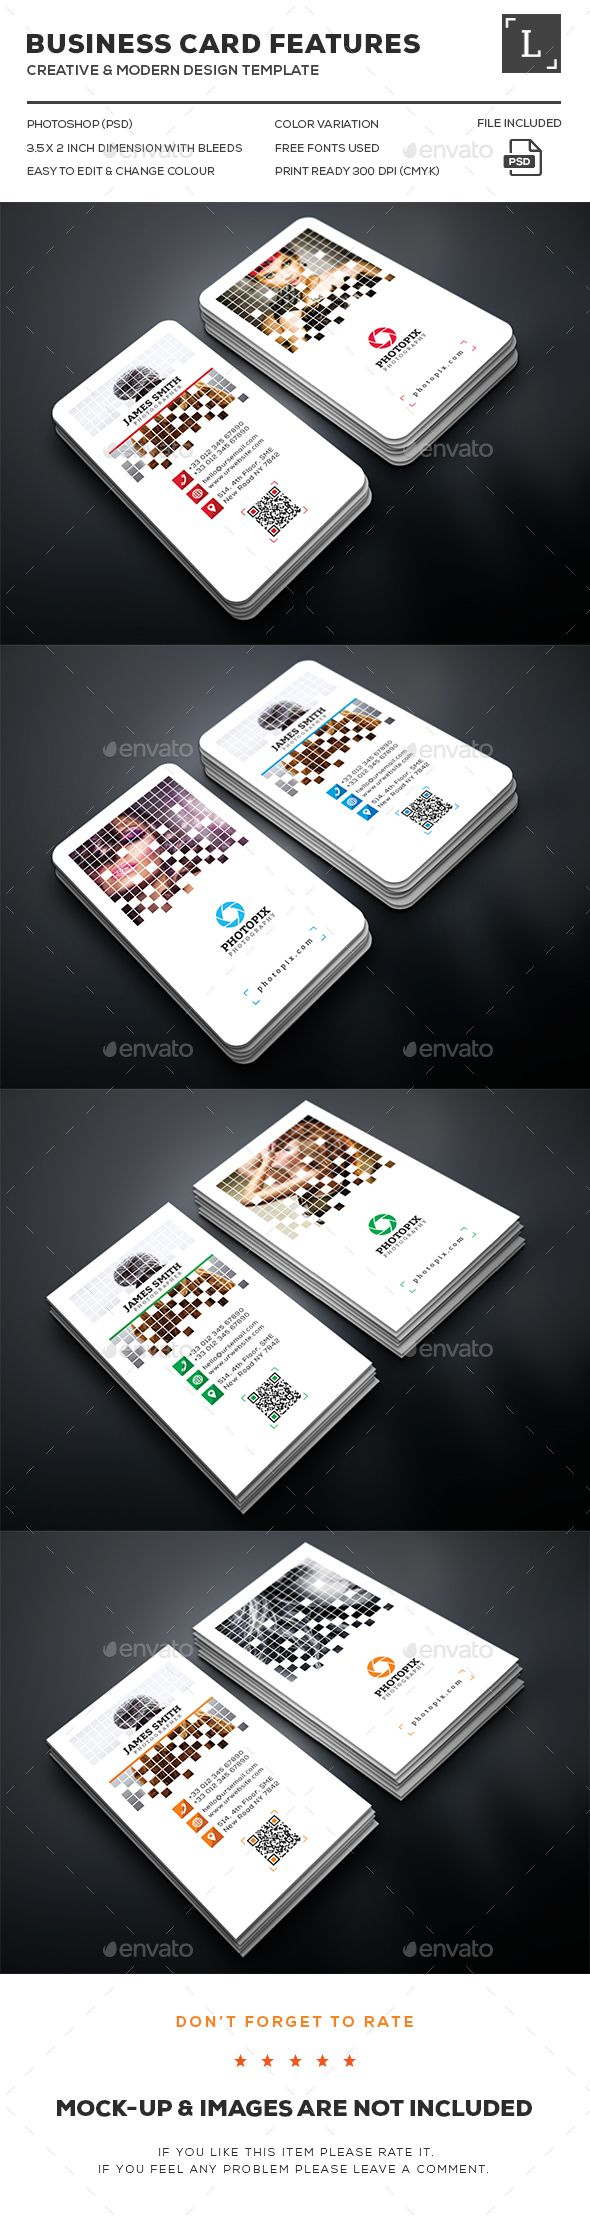 610 Best Business Cards Images On Pinterest Business Card Design